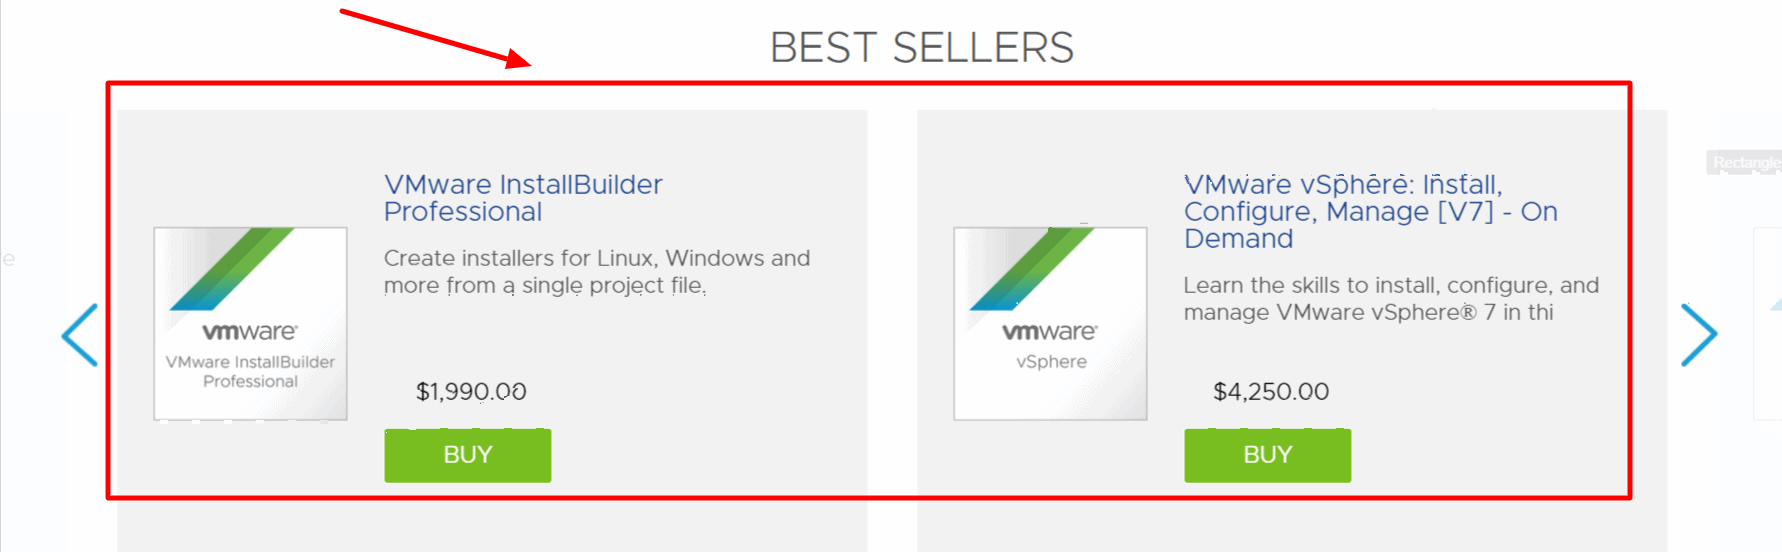 VMware Online Pricing- VMware fusion review